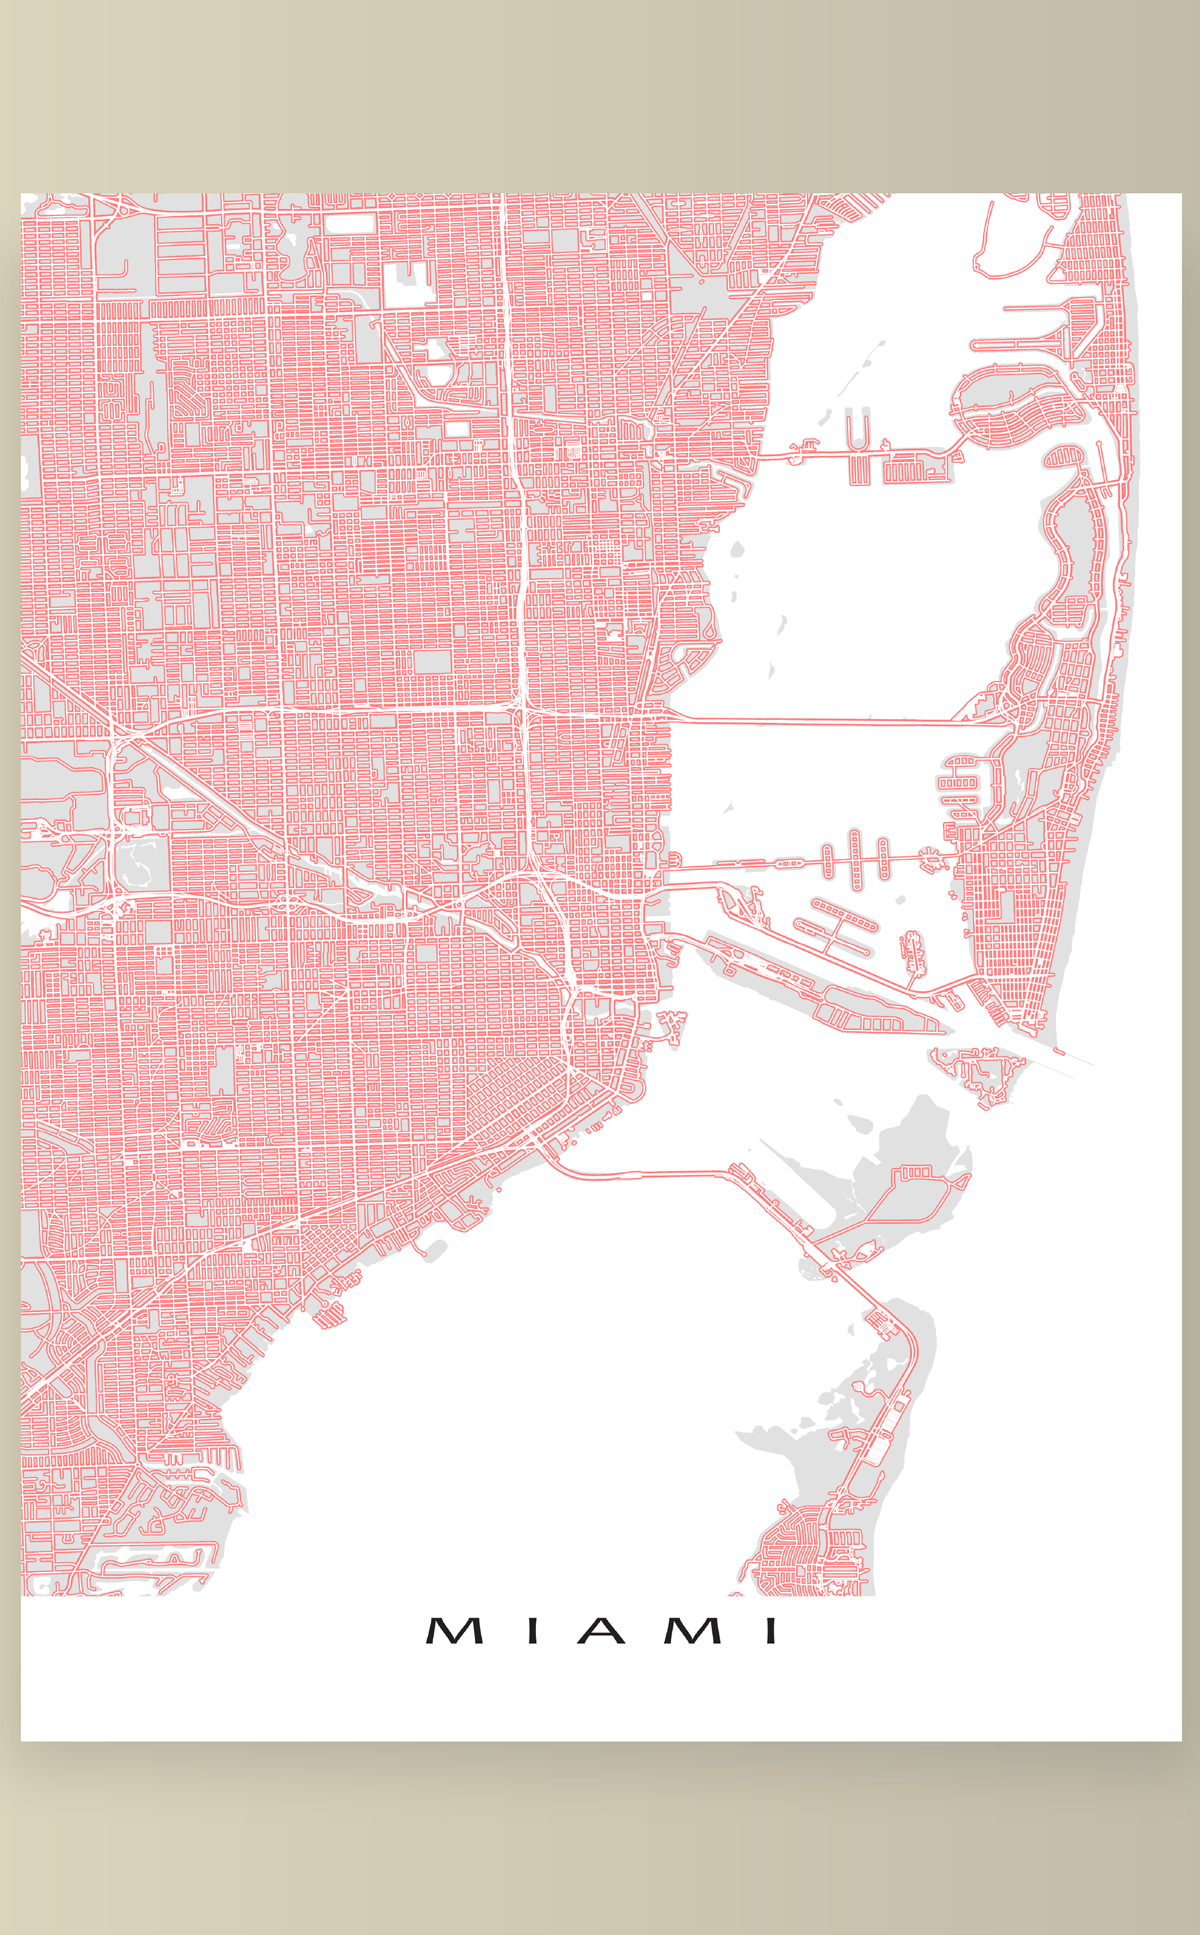 A Miami, FL map print with a colourful street network